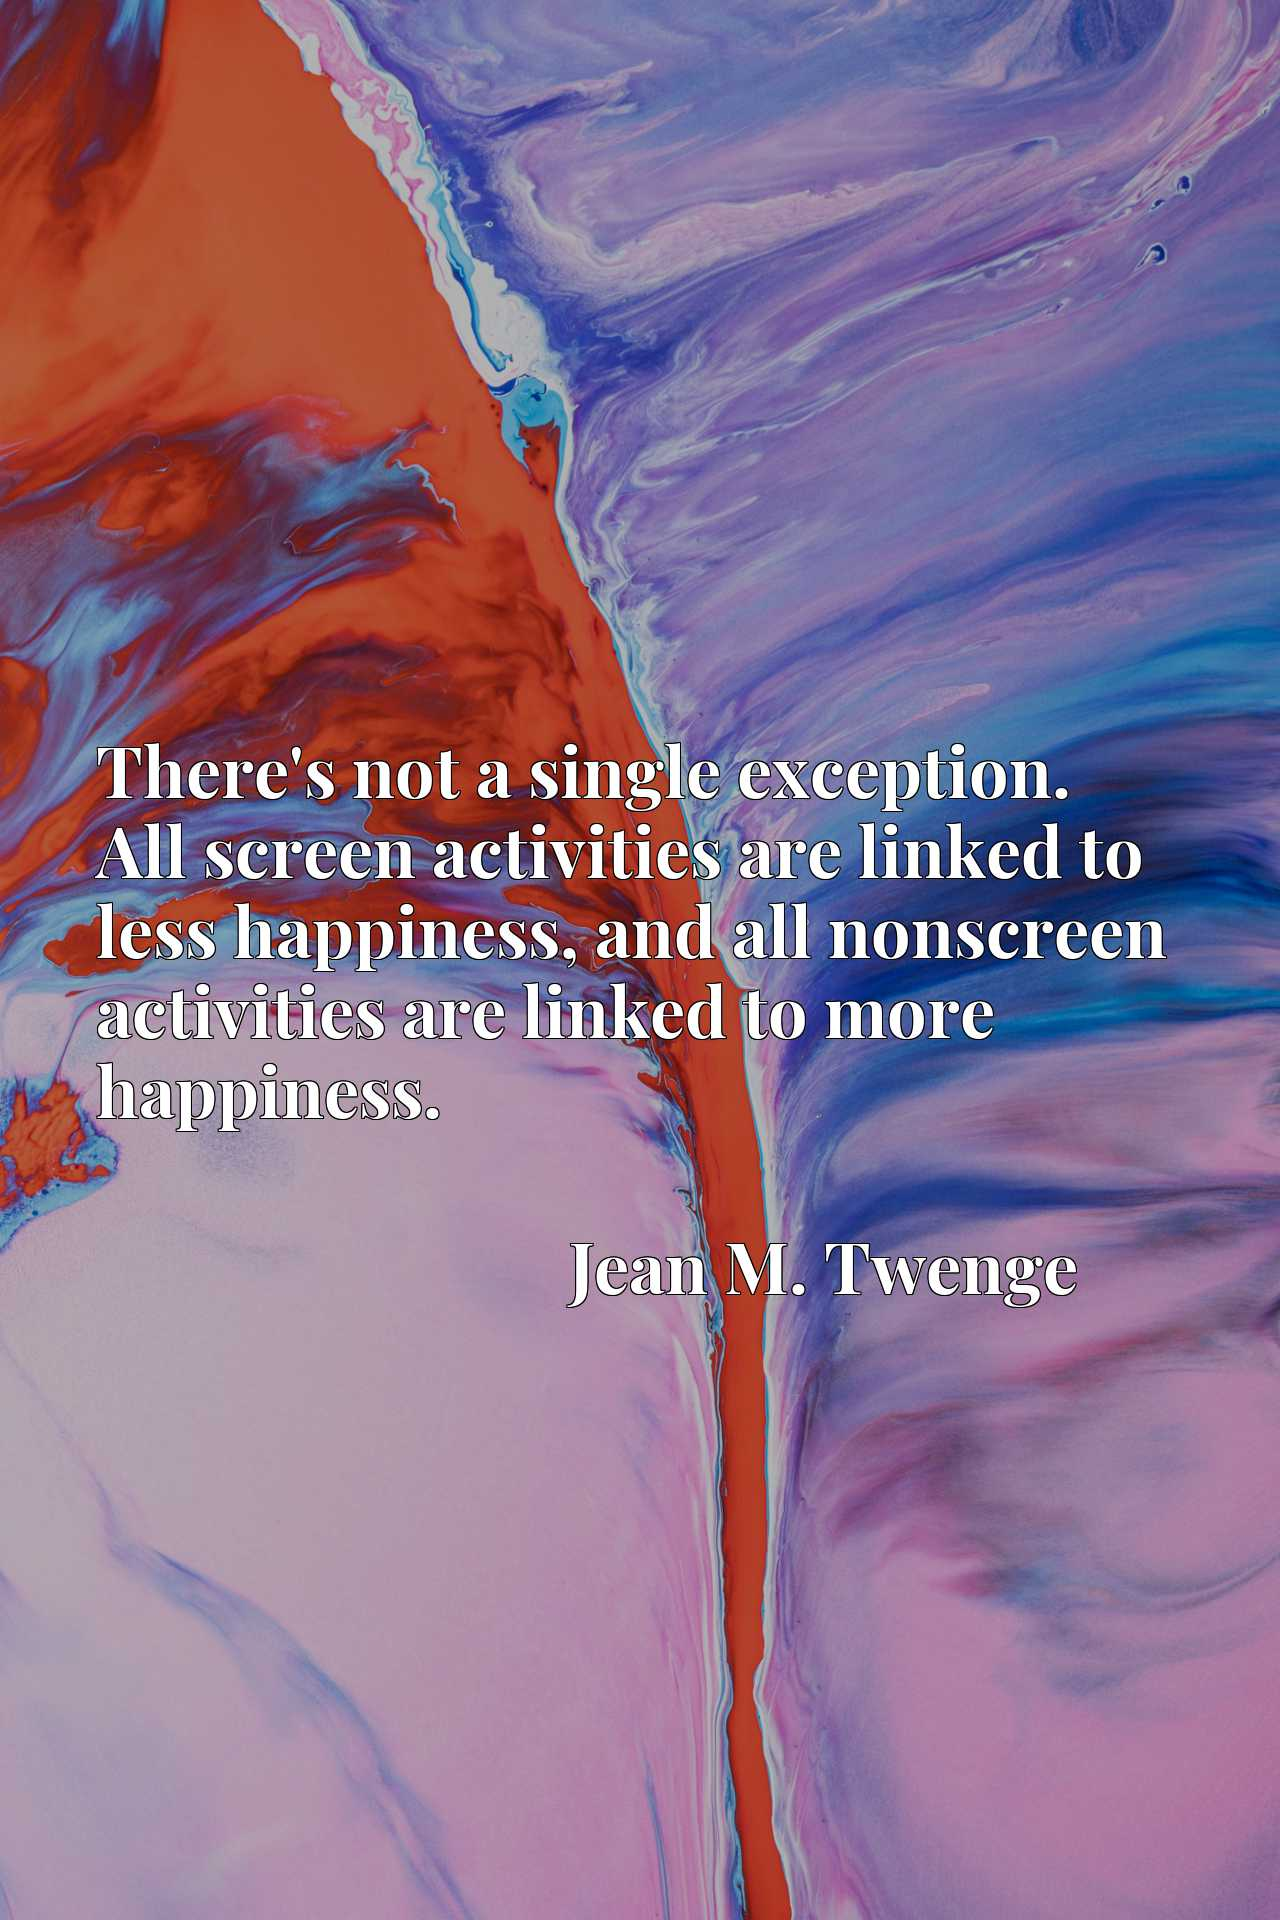 There's not a single exception. All screen activities are linked to less happiness, and all nonscreen activities are linked to more happiness.